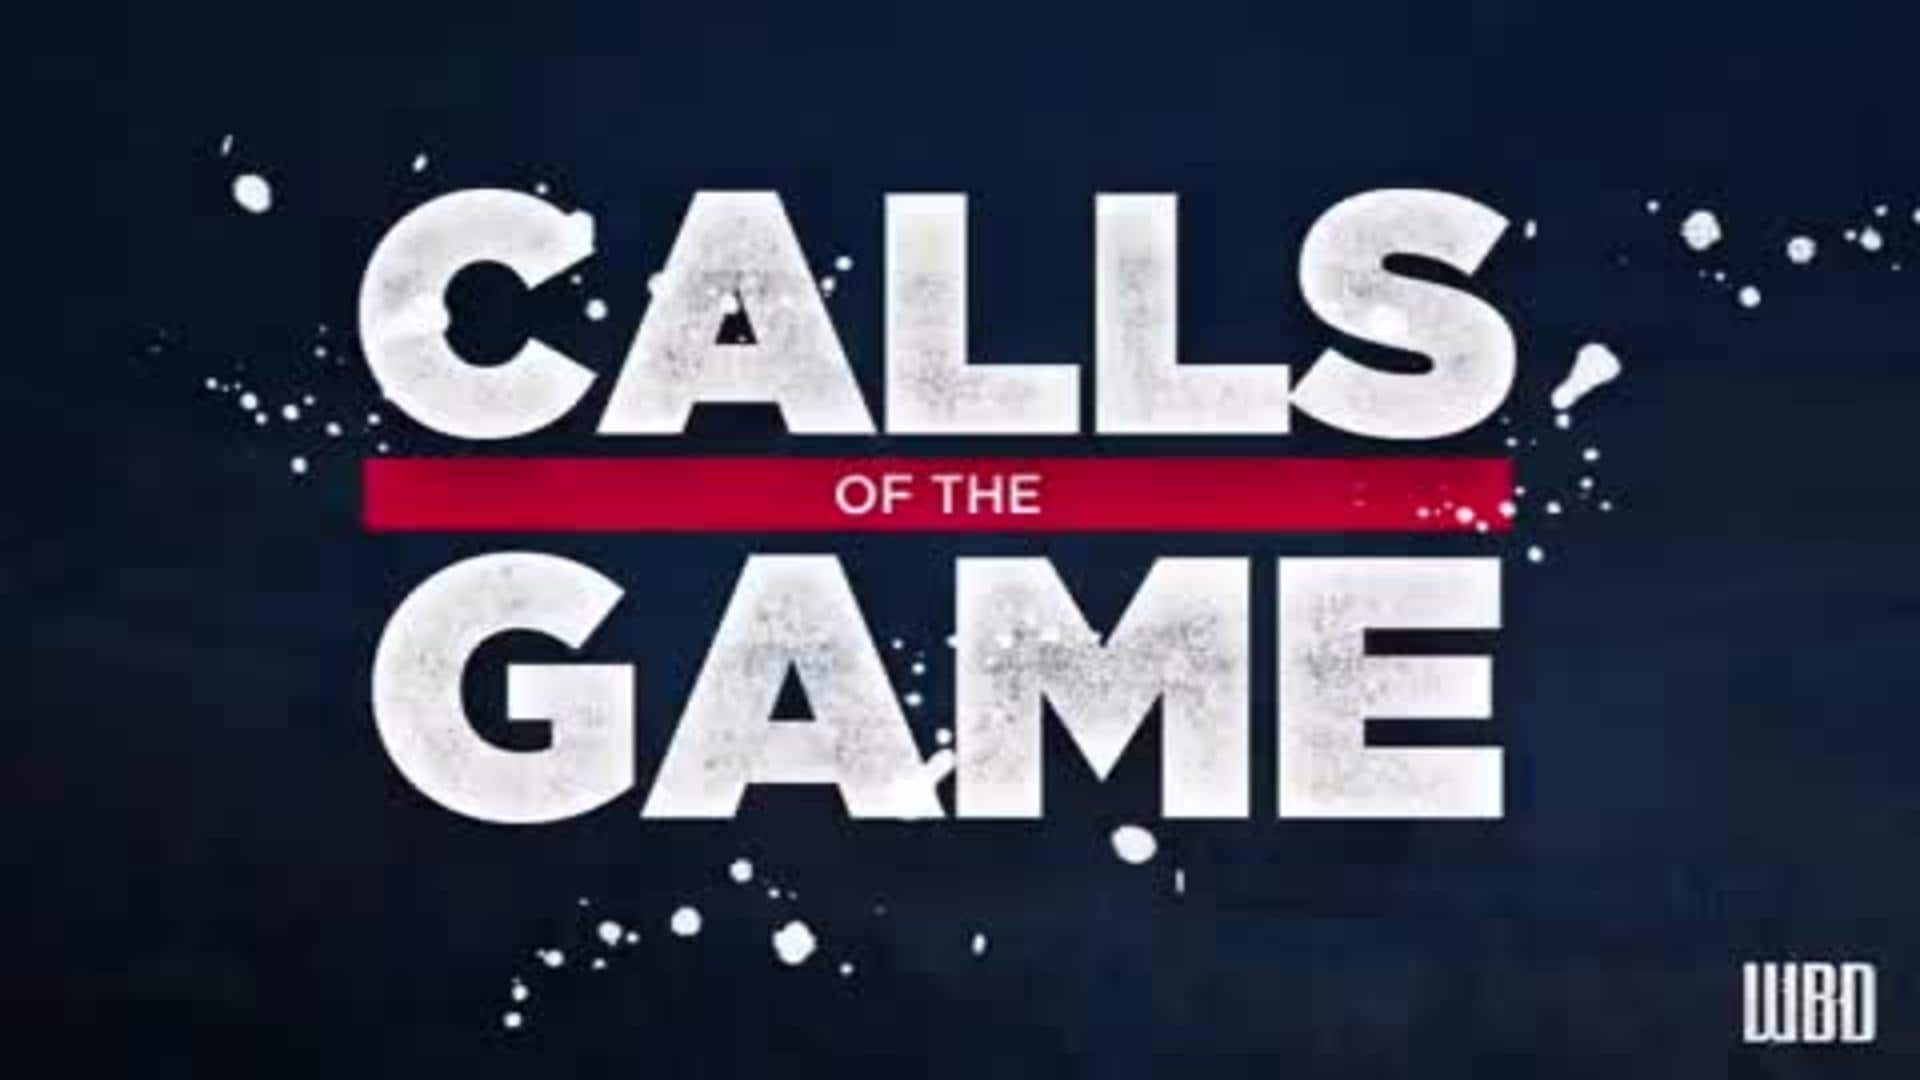 Calls of the Game: New Orleans Pelicans vs Memphis Grizzlies - Game 44 - Jan. 20, 2020